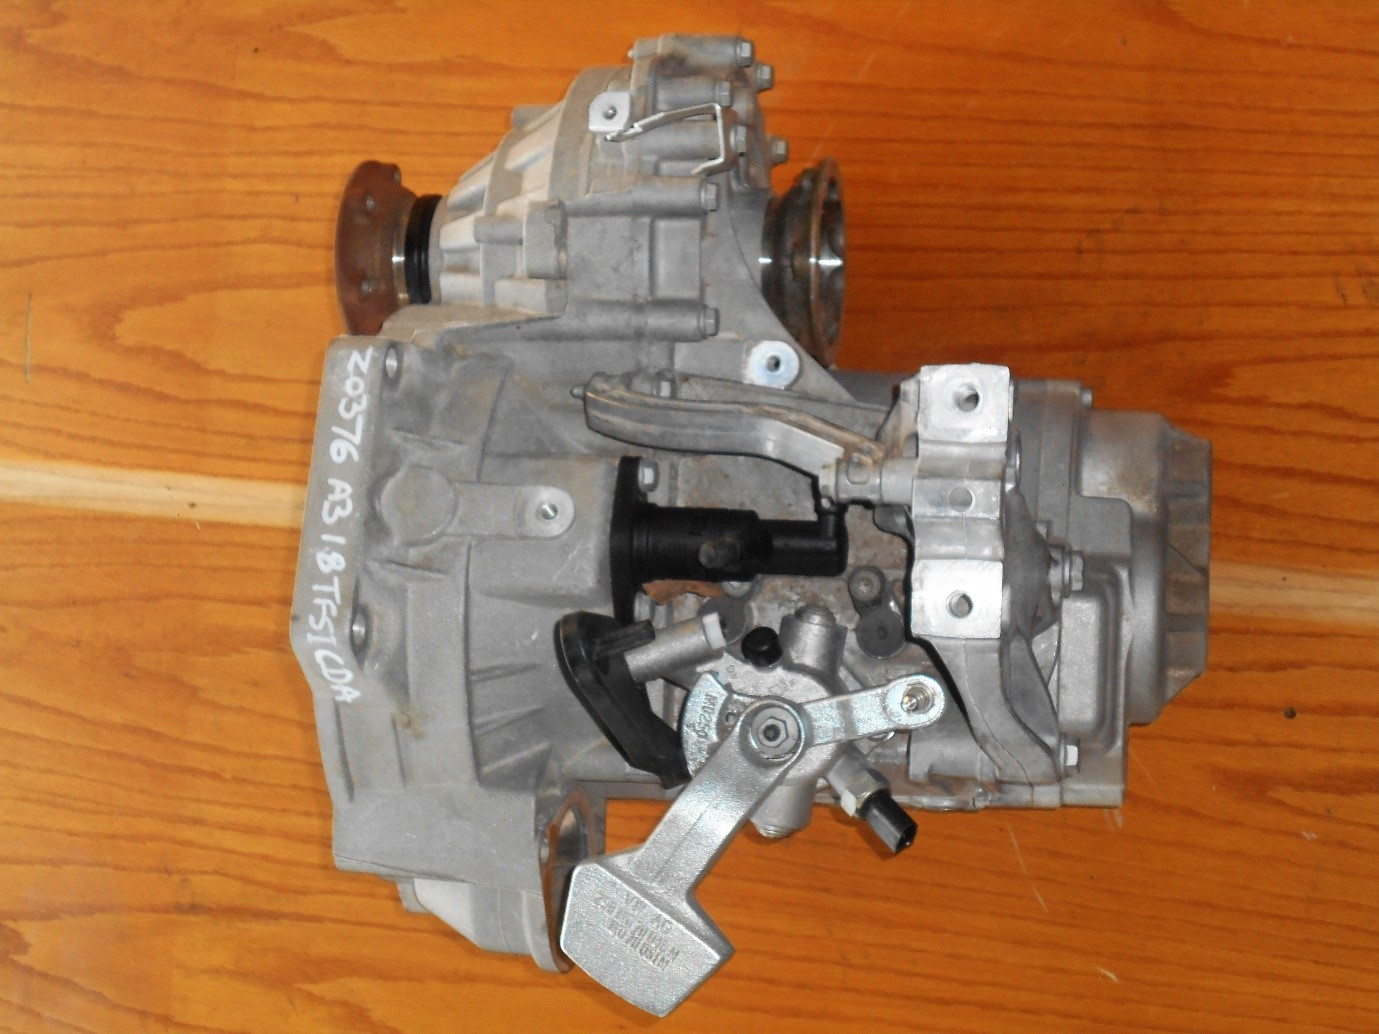 Audi A3 1.8 TFSI CDA Gearbox for sale | Junk Mail